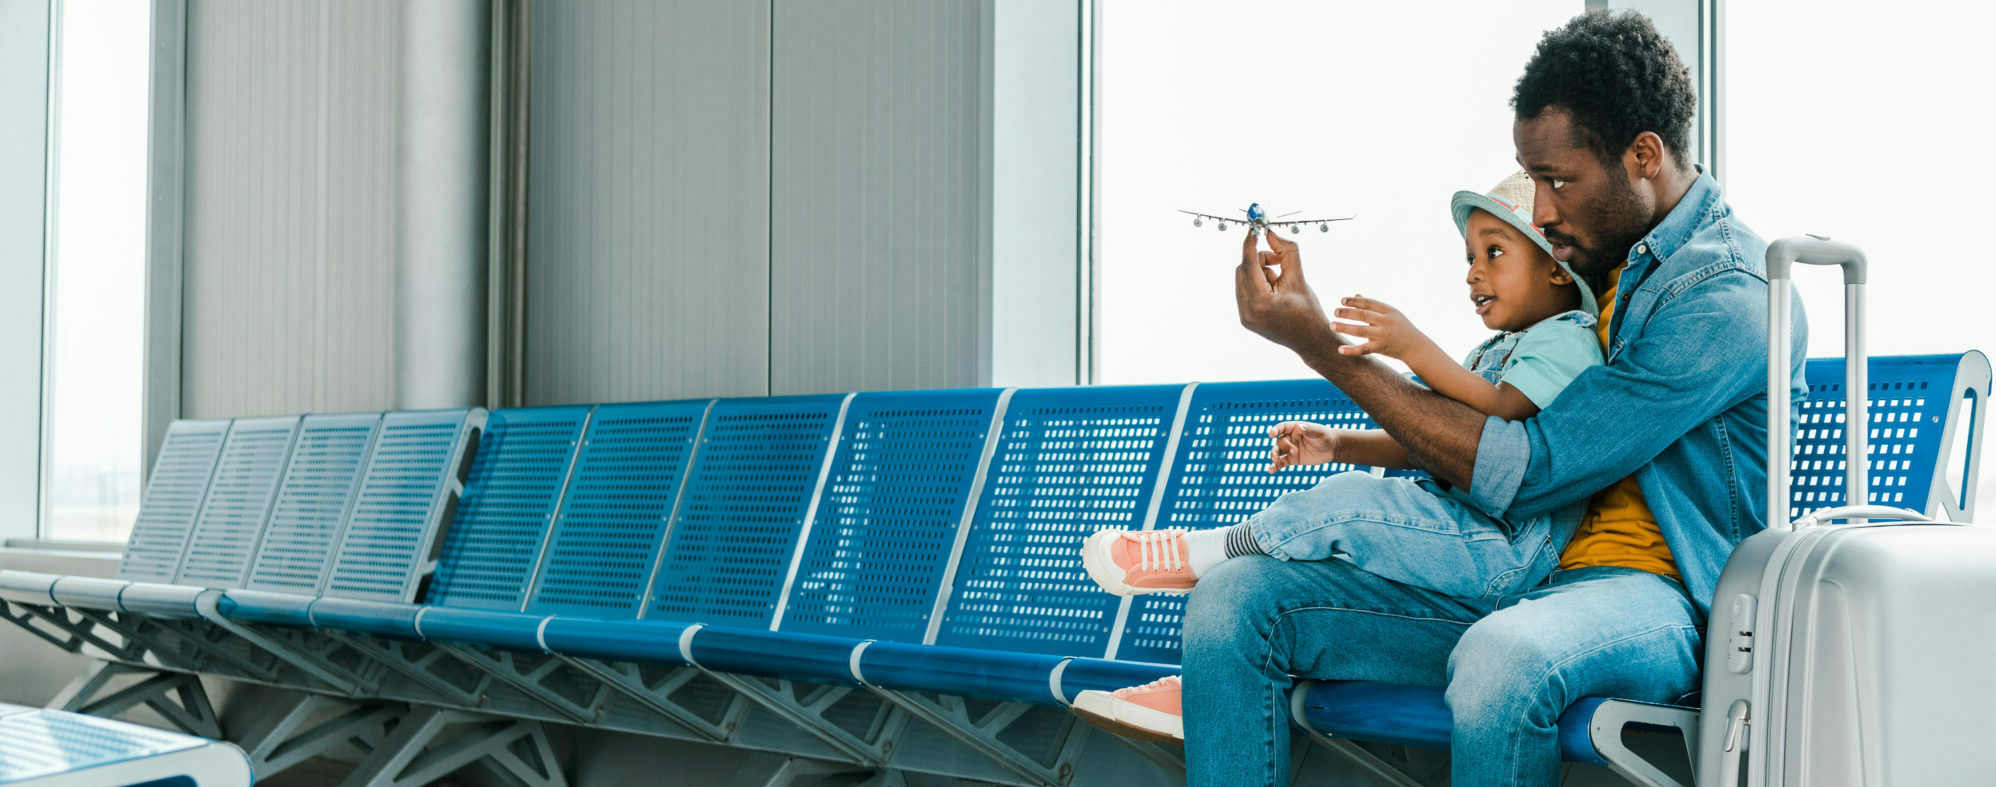 man and child playing with airplane from travel and hospitality industry